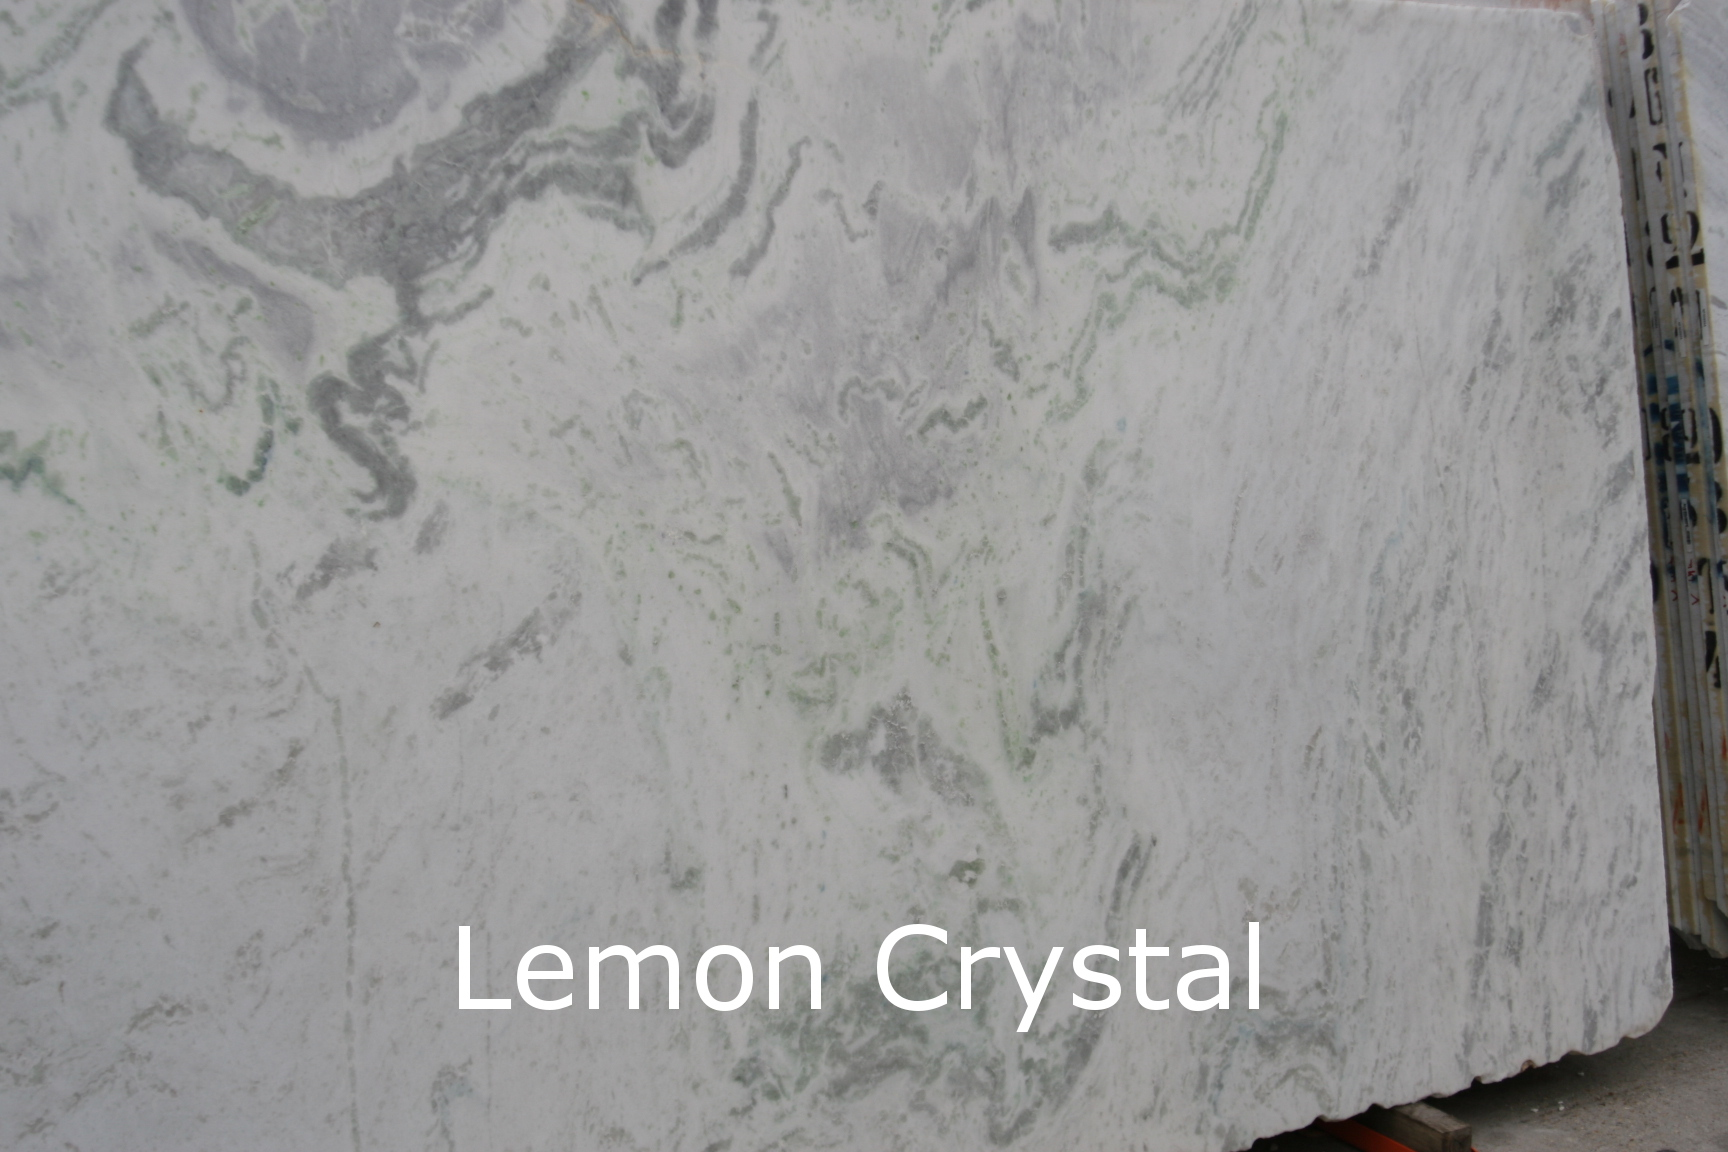 Lemon Crystal